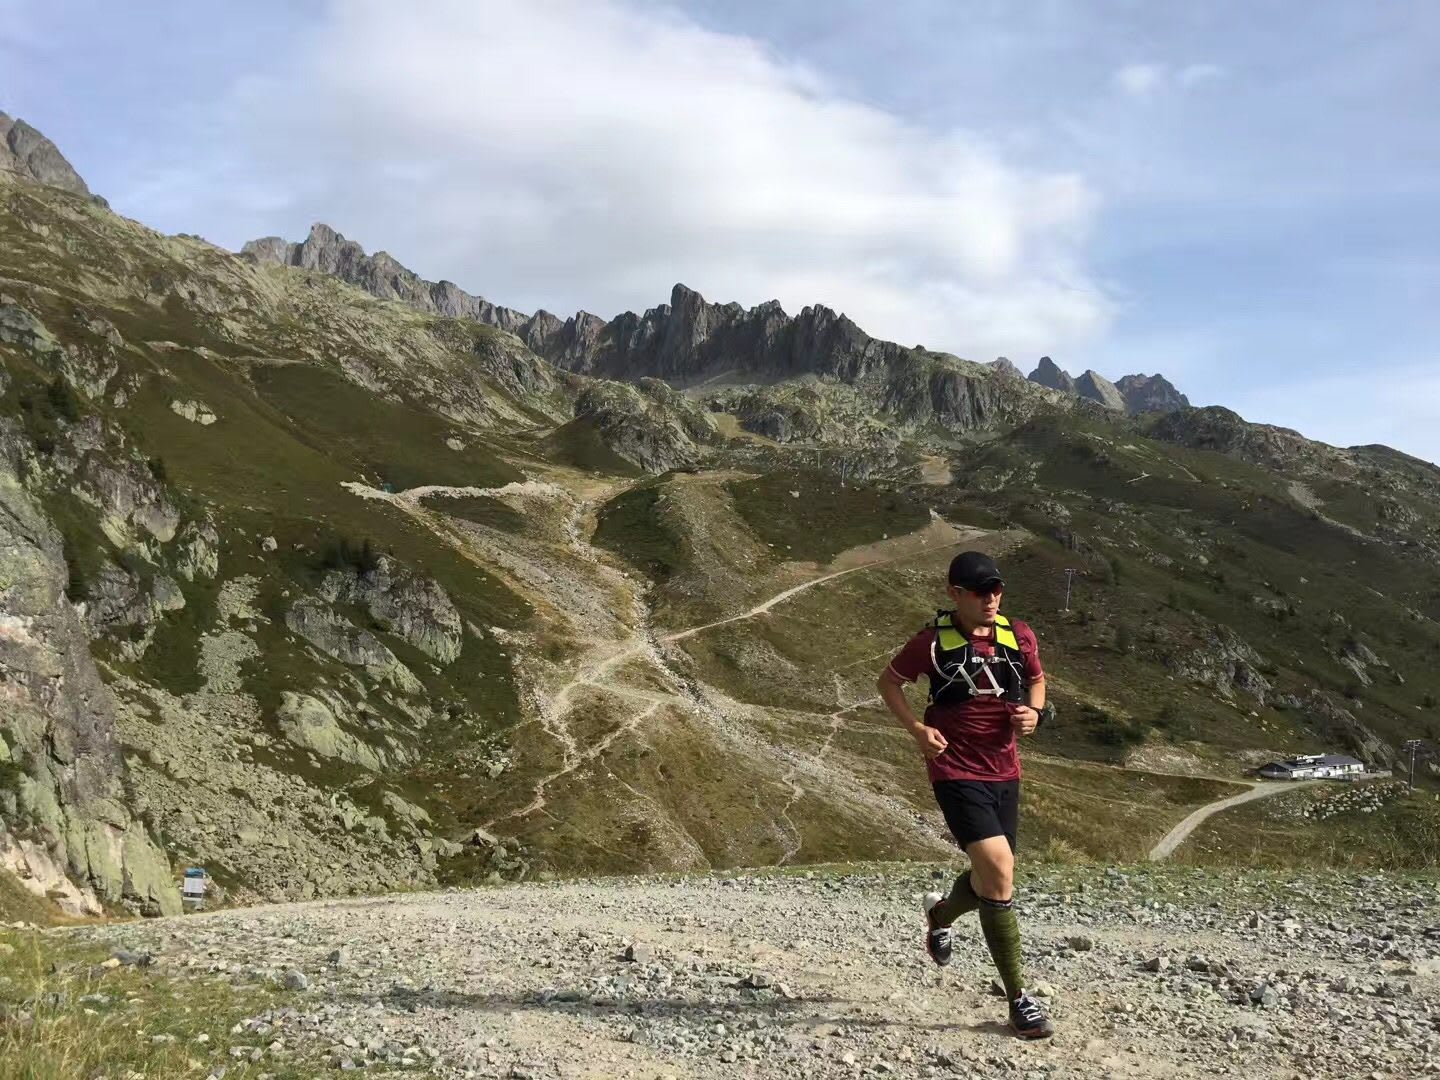 A man runs alone across a rocky terrain on top of a valley. run, running, training, ,motivation,